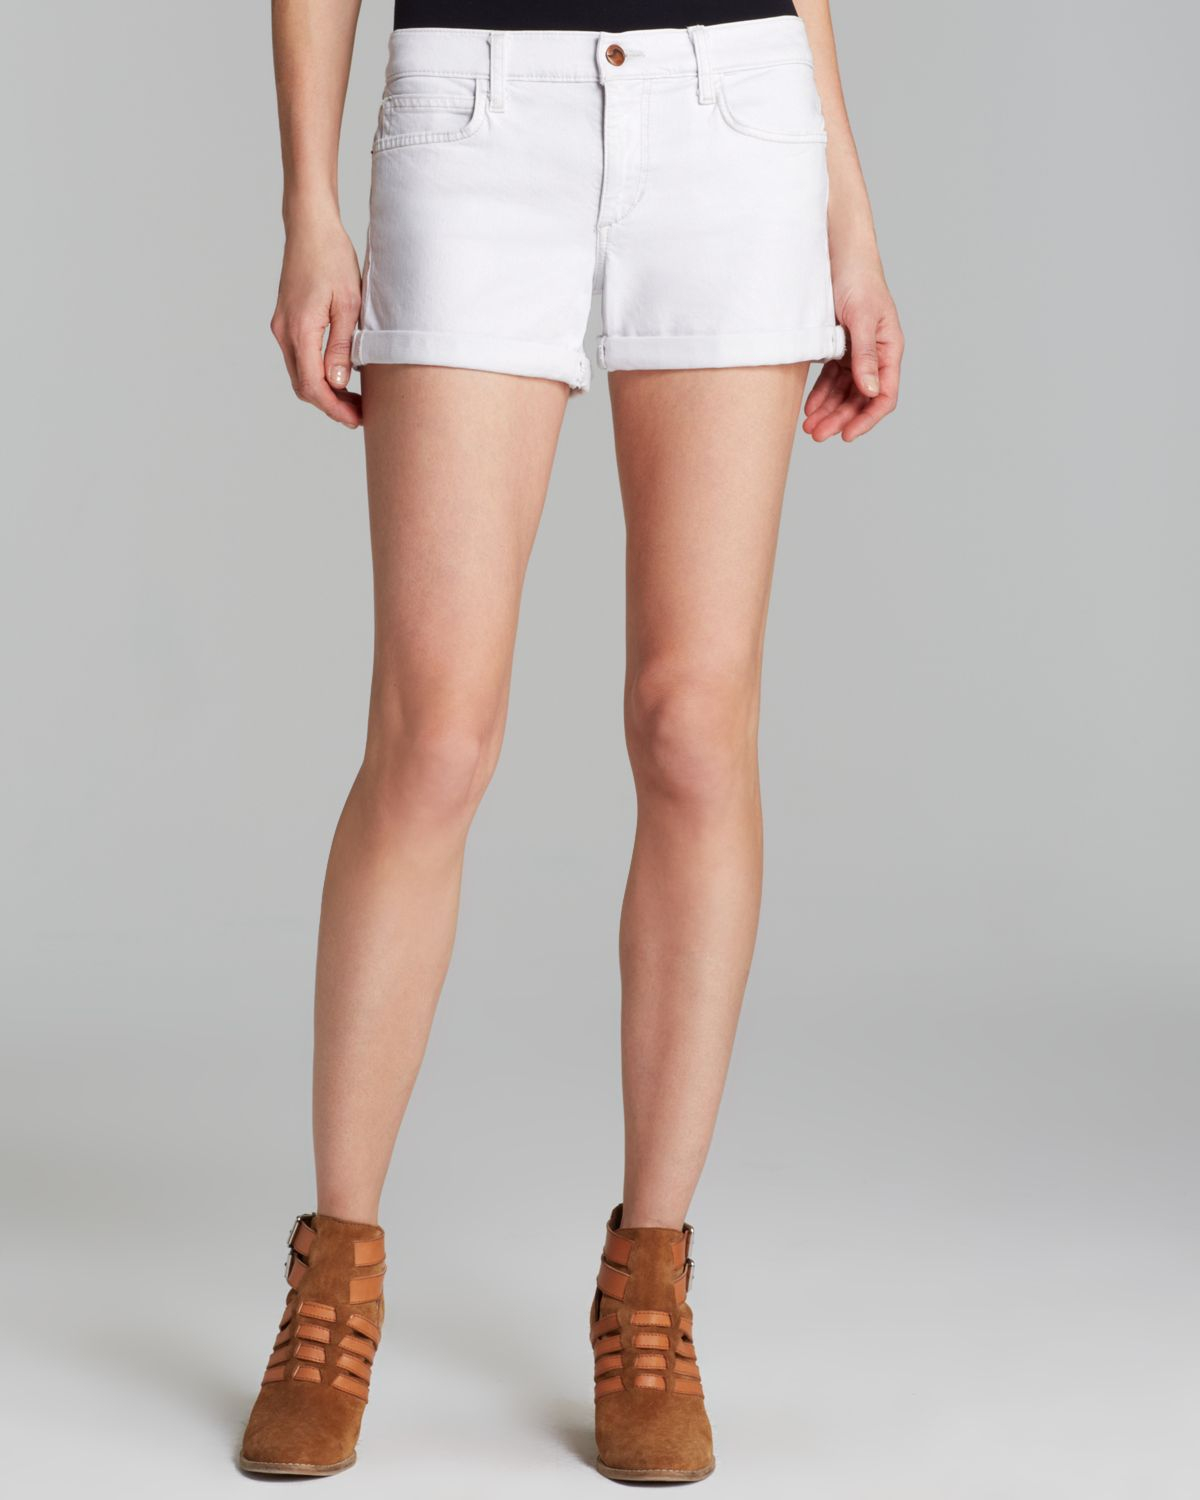 Joe&39s jeans Shorts Rolled in Pennie in White | Lyst